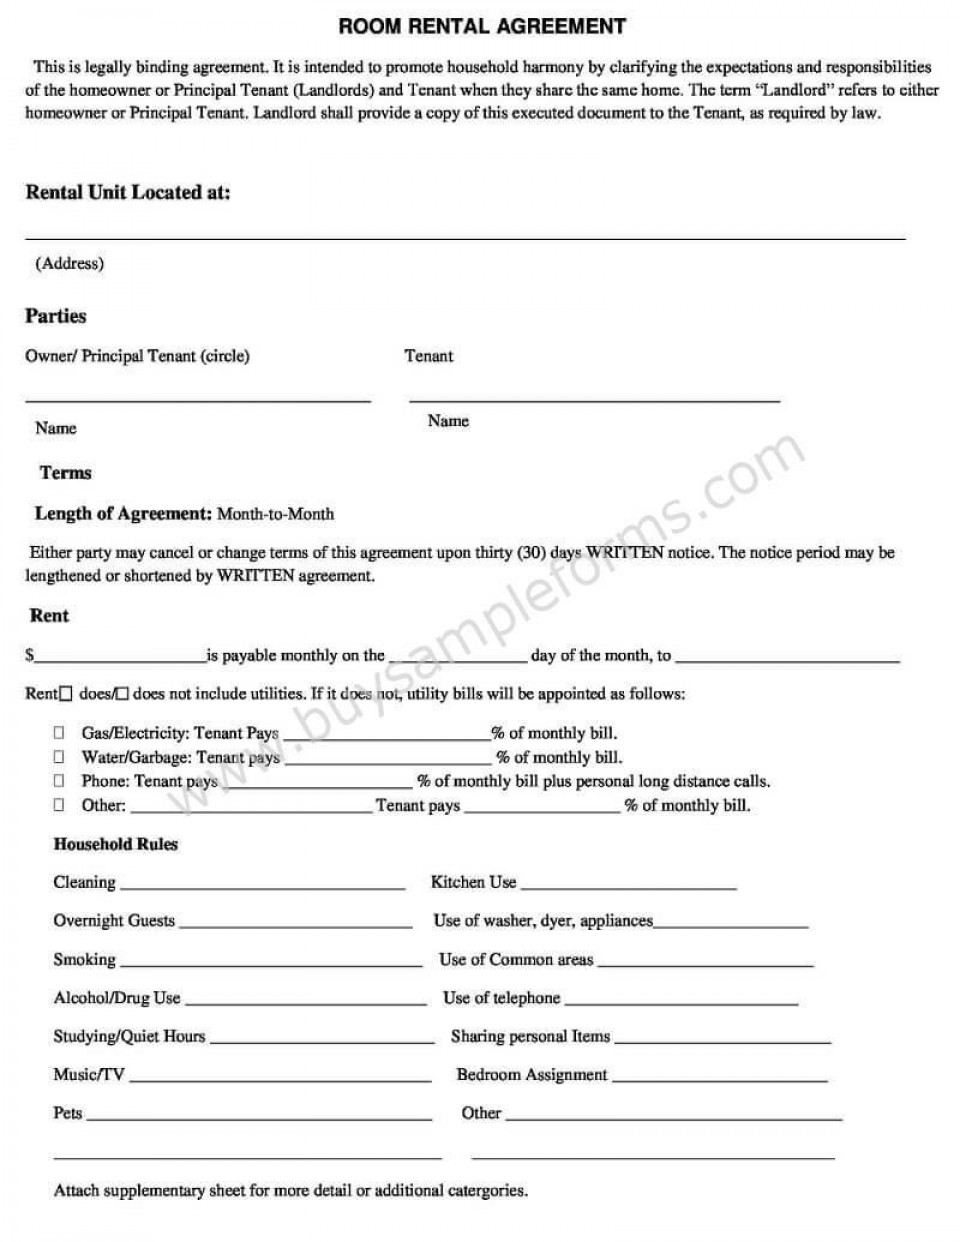 009 Dreaded Rental Agreement Template Word Free Photo  Room Doc In Tamil Format Download960